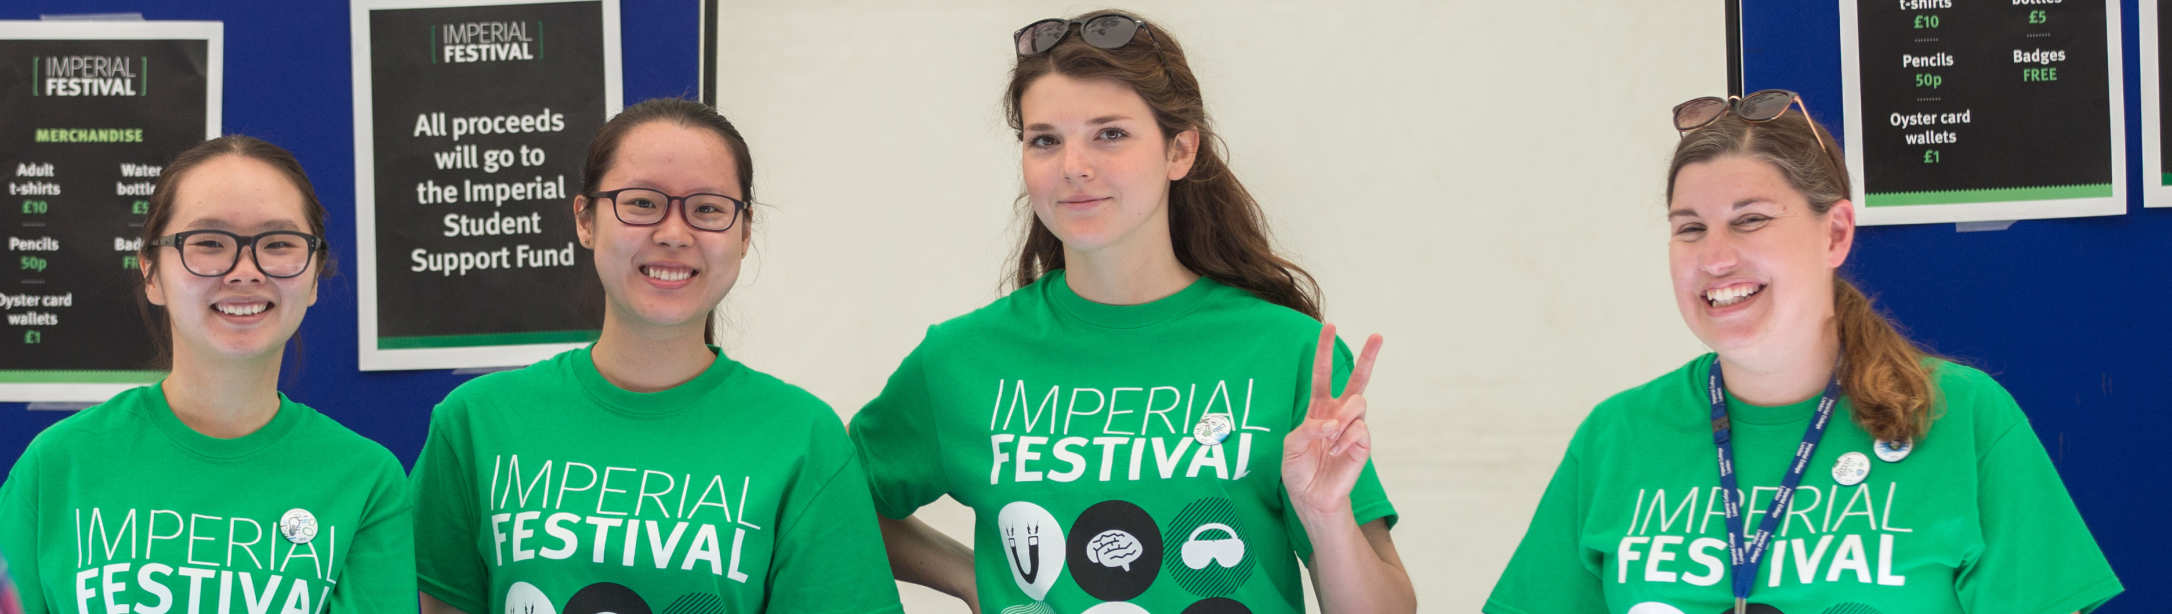 Staff and students volunteering at Imperial Festival